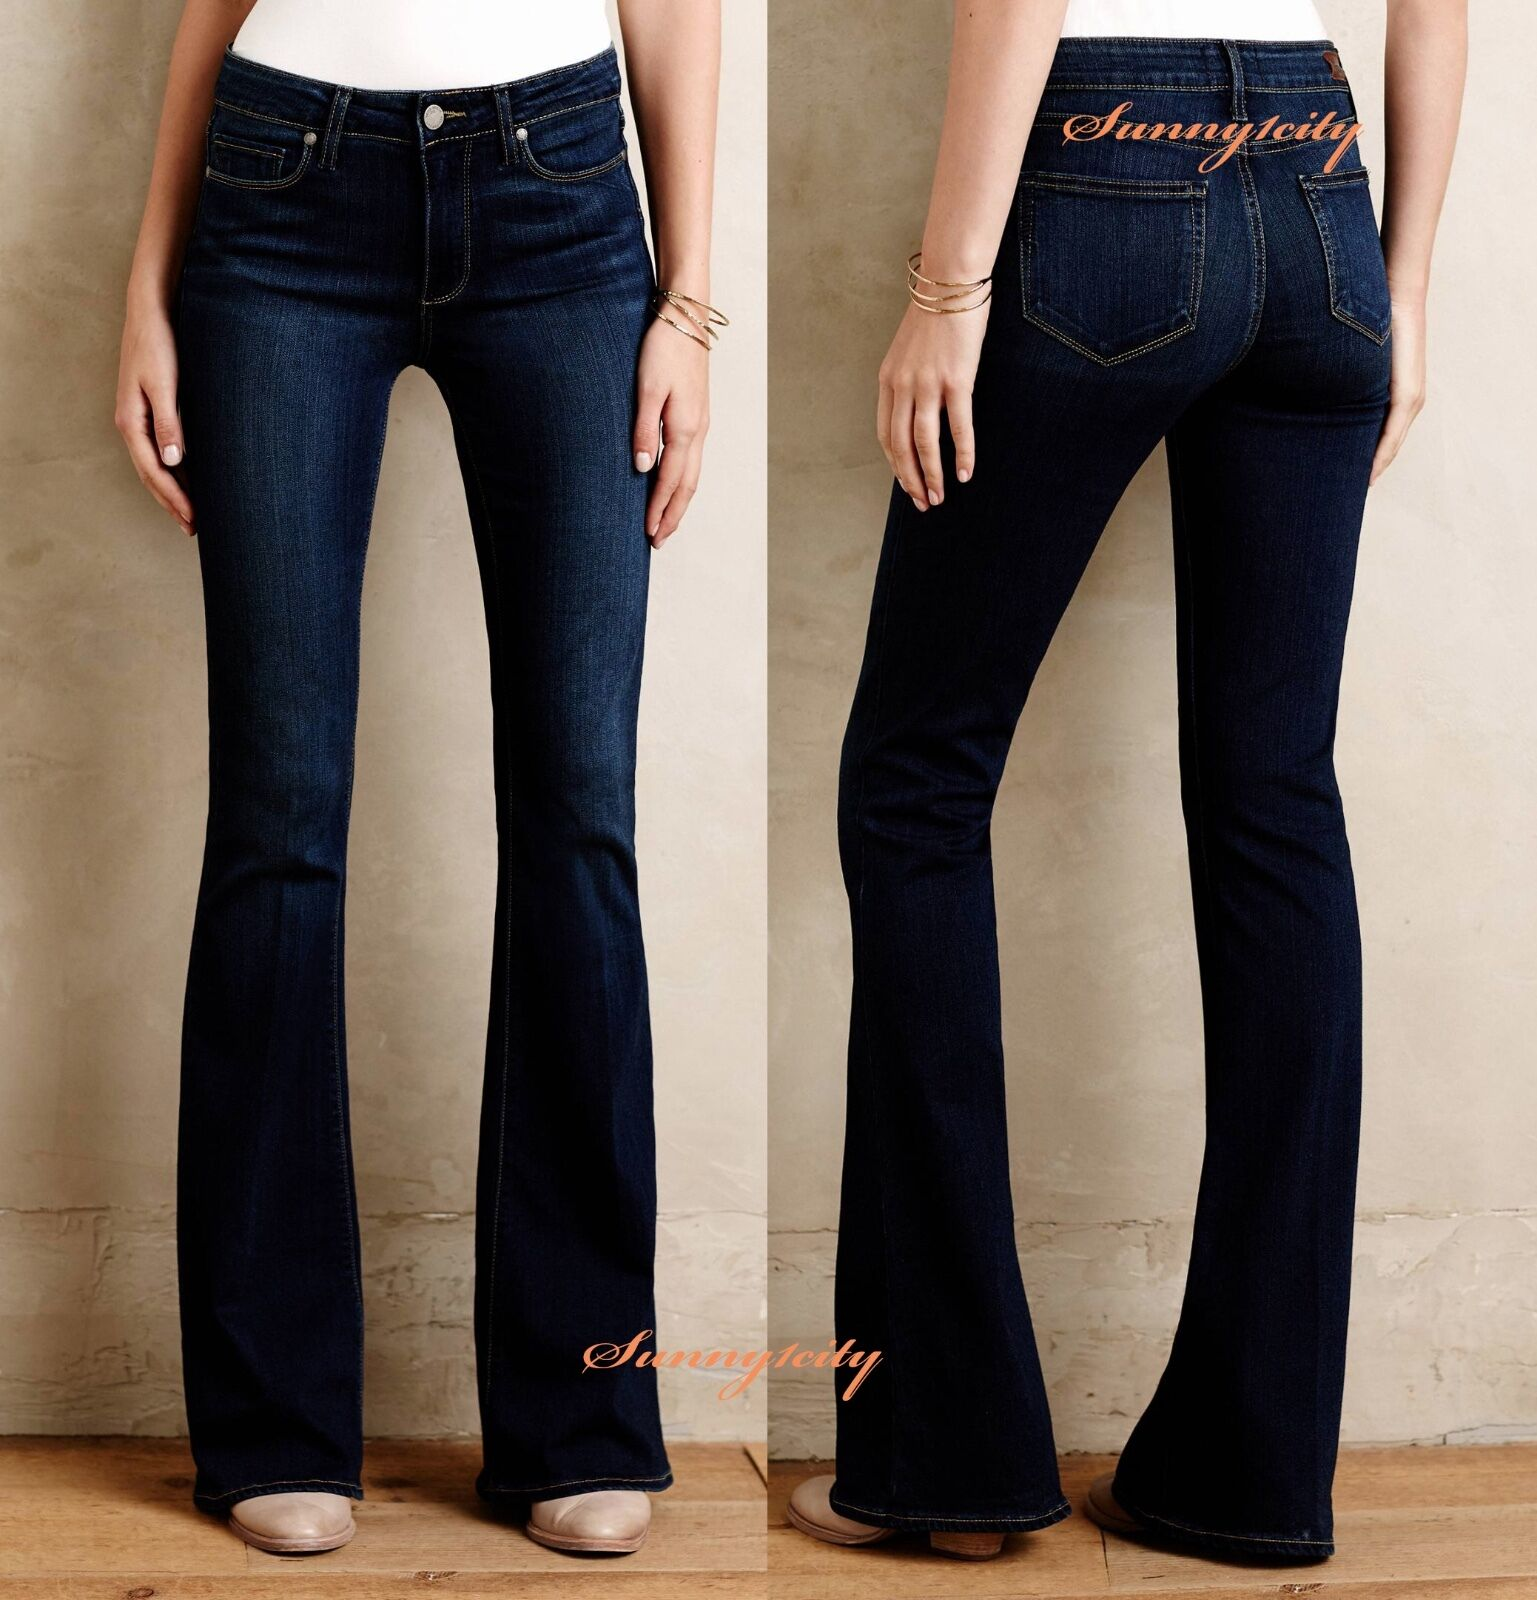 NWT 26 Anthropologie Paige High-Rise Bell Canyon Flare Jeans by Paige 5 Star REV